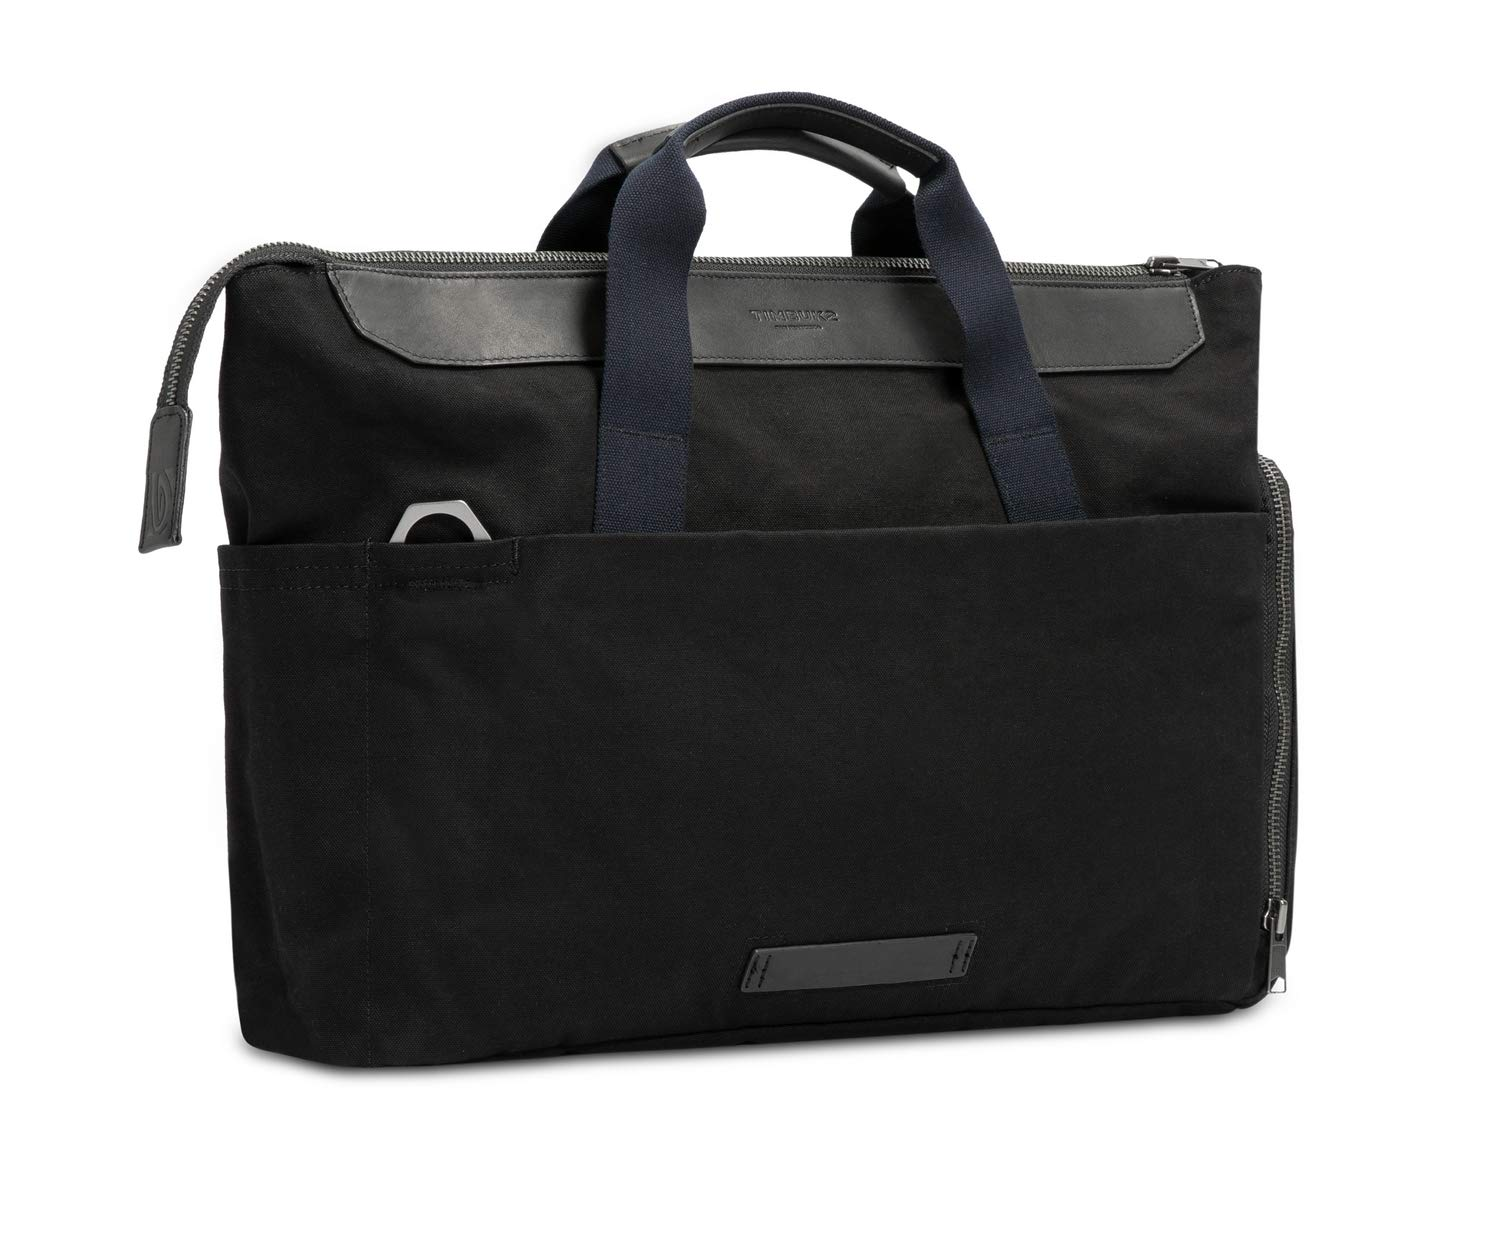 Timbuk2 Smith Briefcase, Jet Black, One Size by Timbuk2